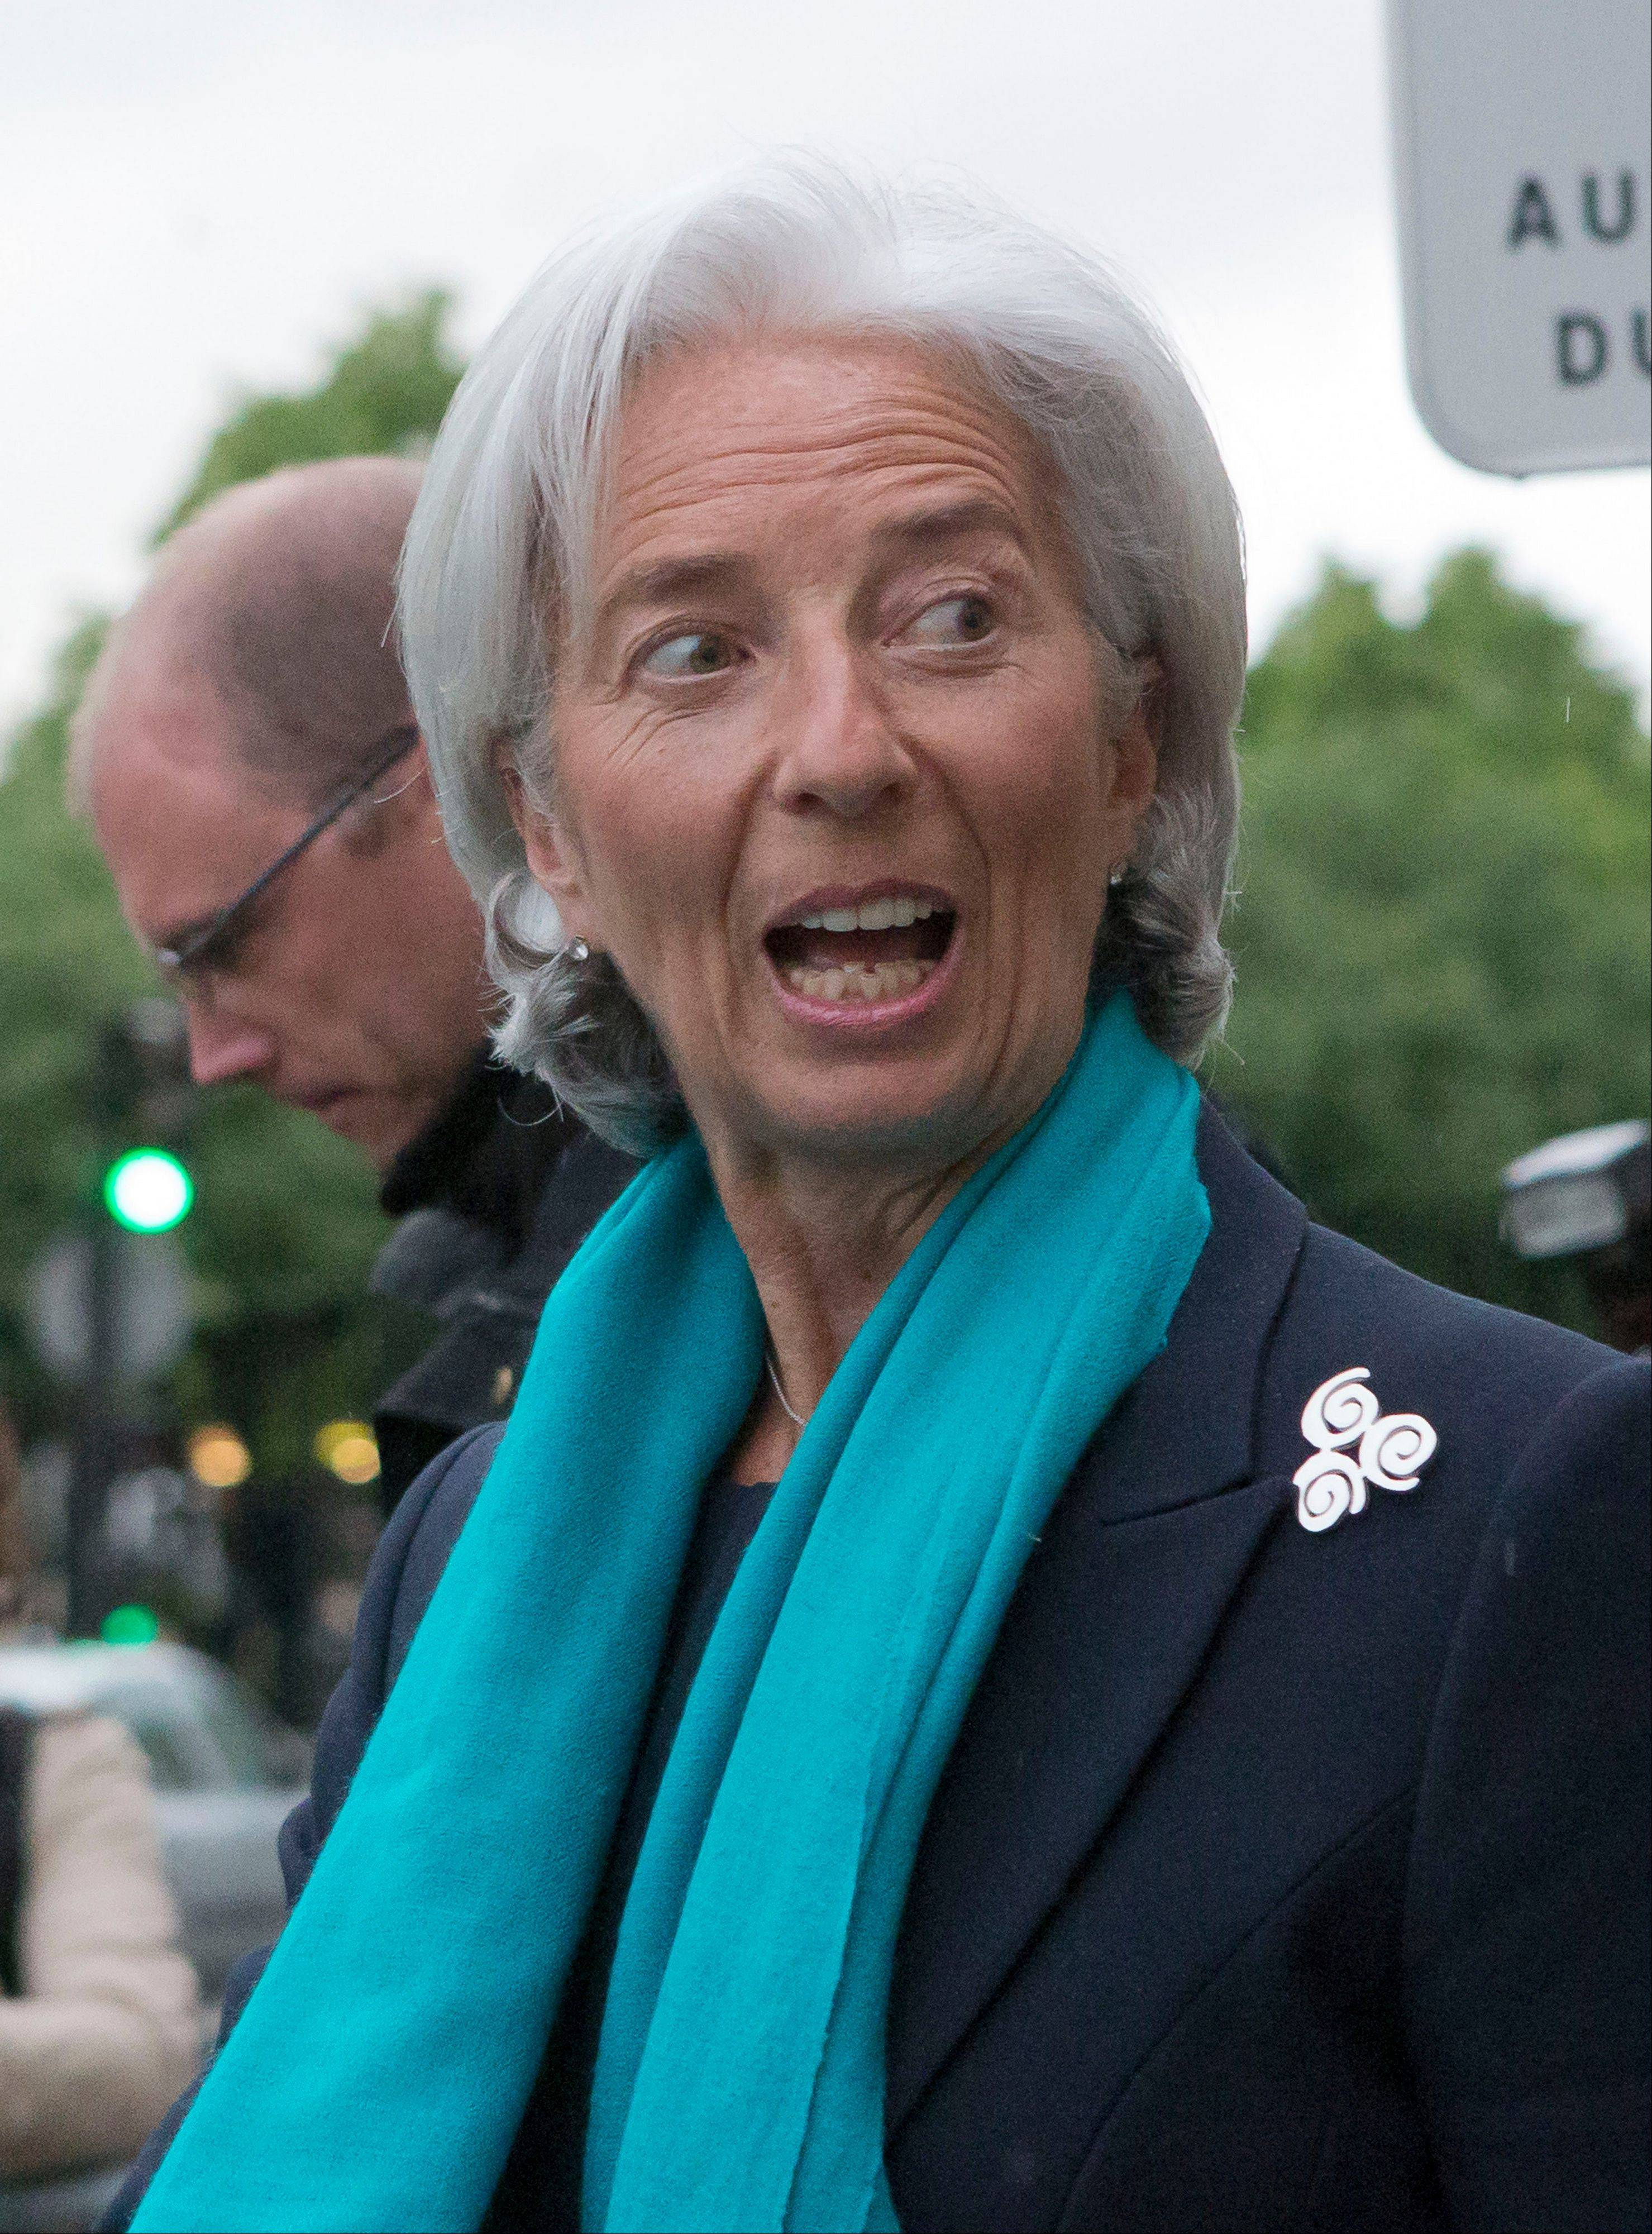 Head of the International Monetary Fund, Christine Lagarde, reacts Thursday as she leaves a special court accompanied by a police officer in Paris.